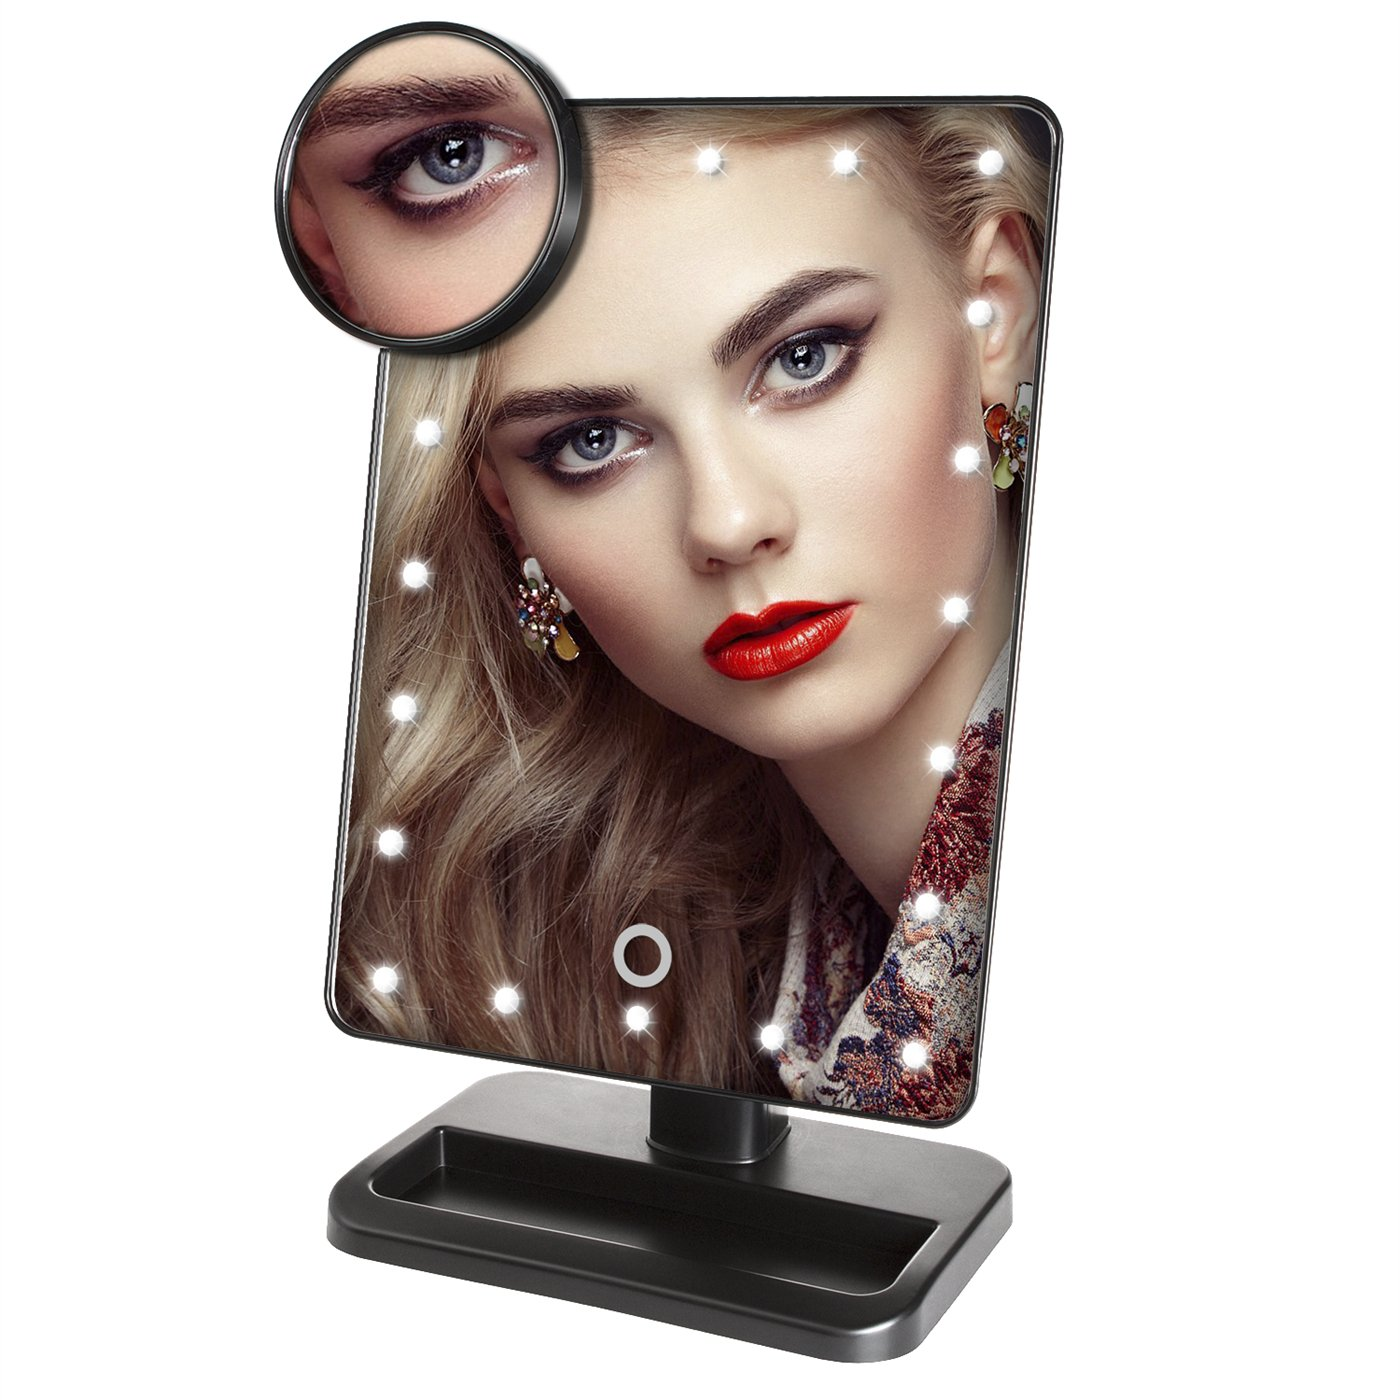 Lighted Makeup Mirrors, Laniakea® Professional Desktop Touch Screen 180 Degree Free Rotation Vanity Table Mirrors with Intelligent Adjustable 20 LED Lights(Free Matched with a 10x Magnifying Spot Mirror)